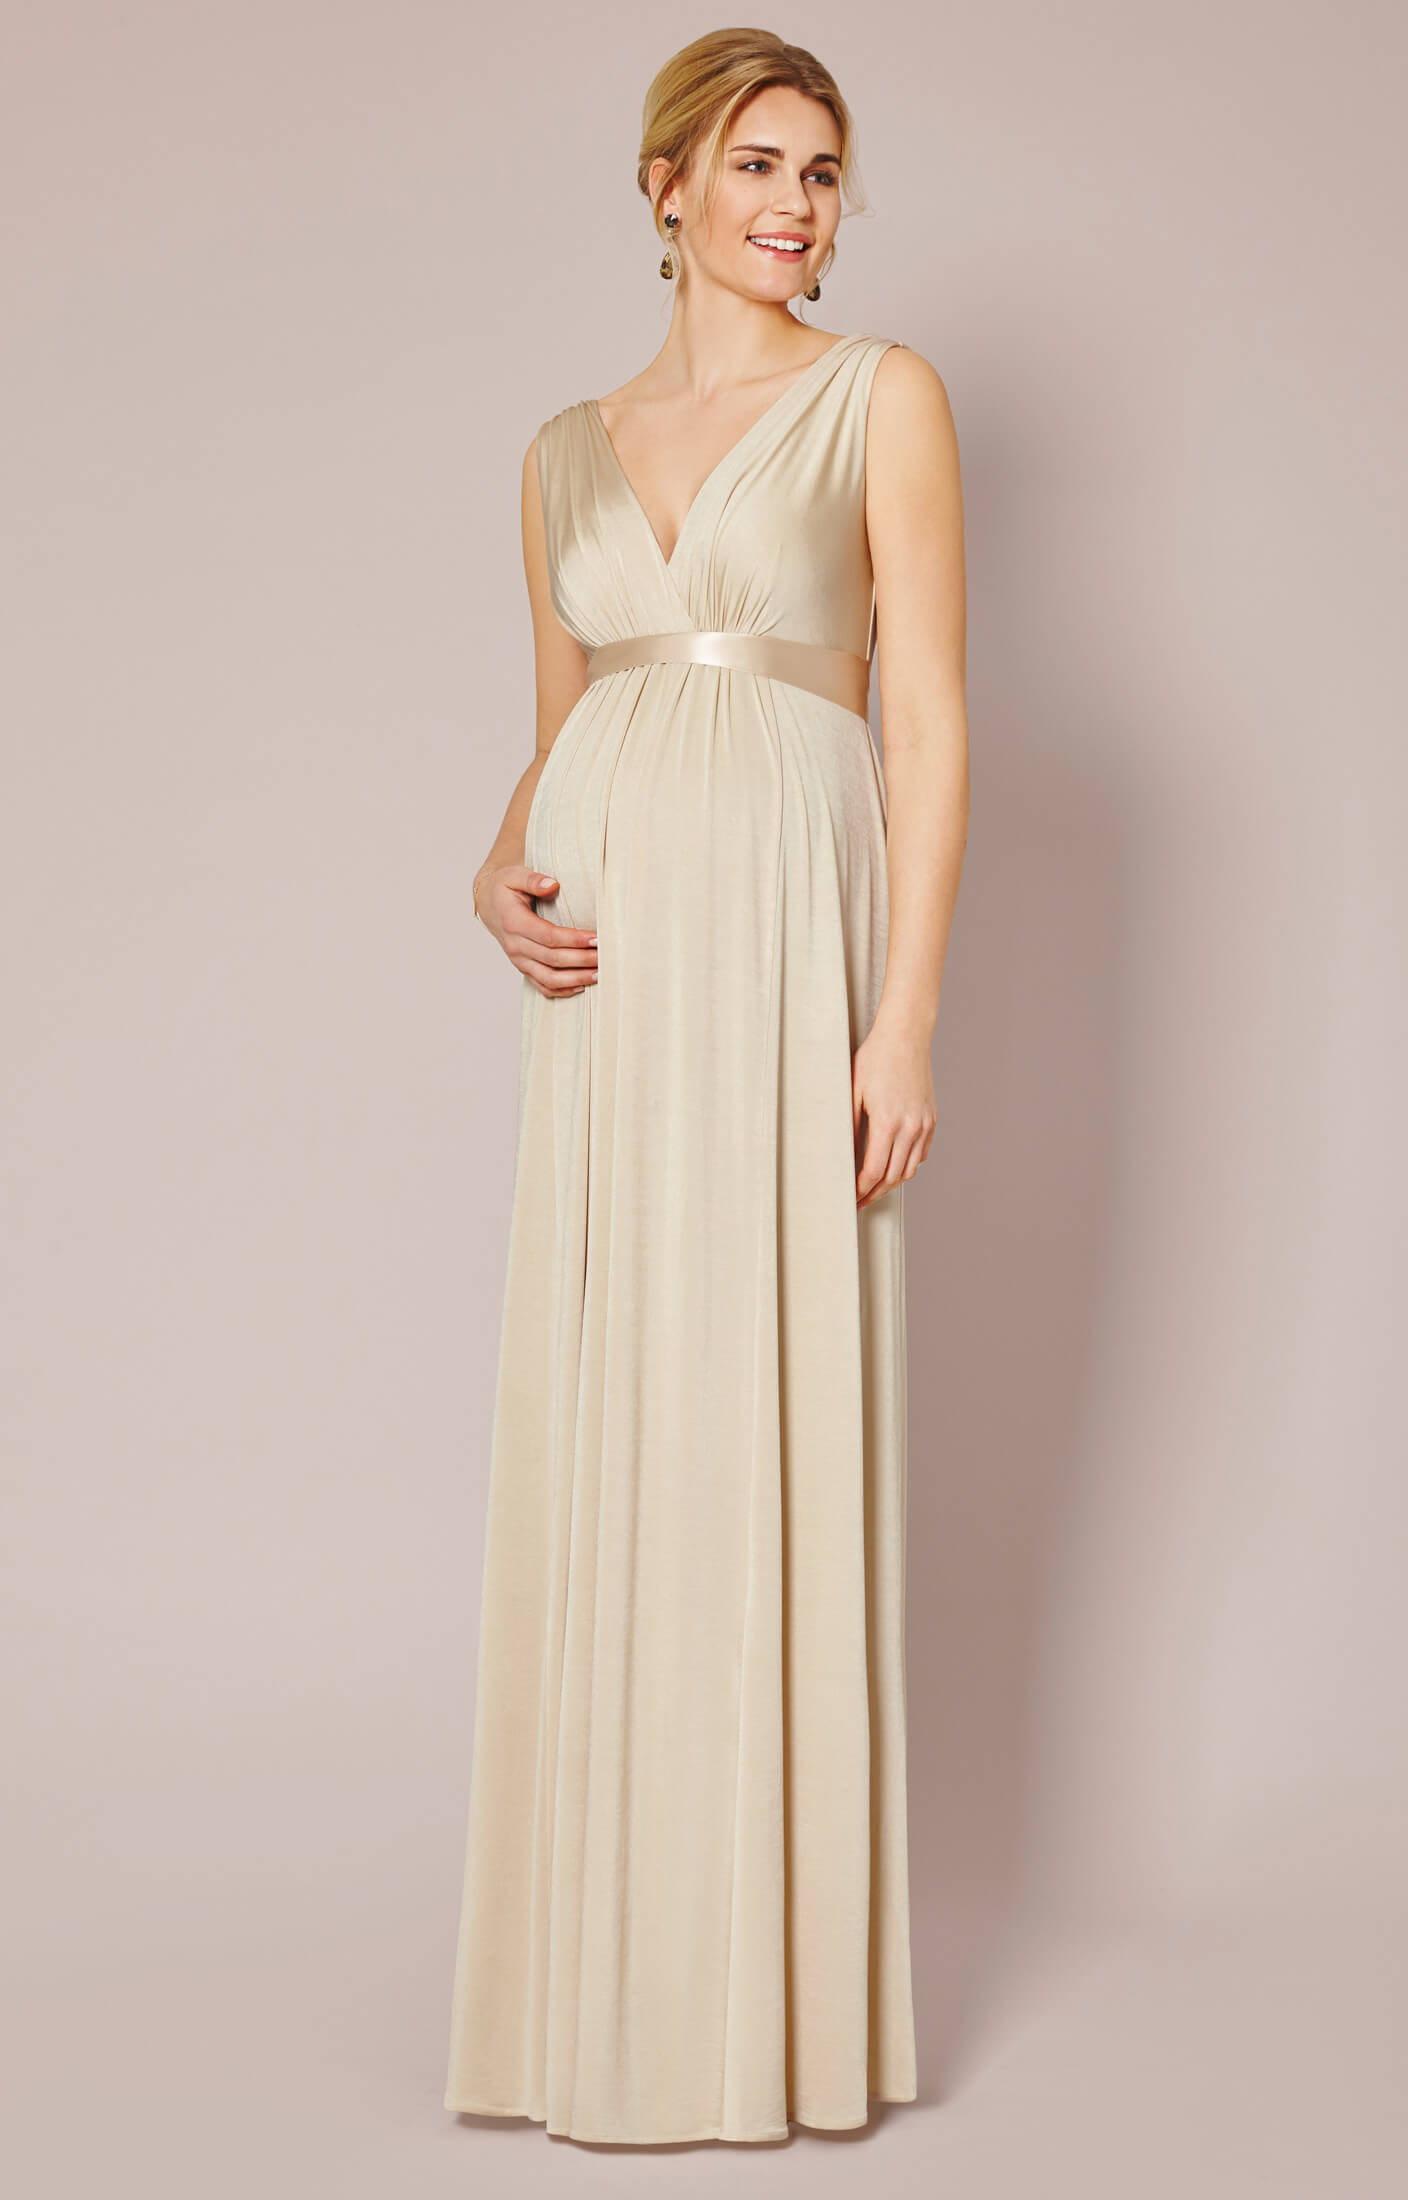 d18801e8f8789 Anastasia Maternity Gown (Gold Dust) - Maternity Wedding Dresses ...